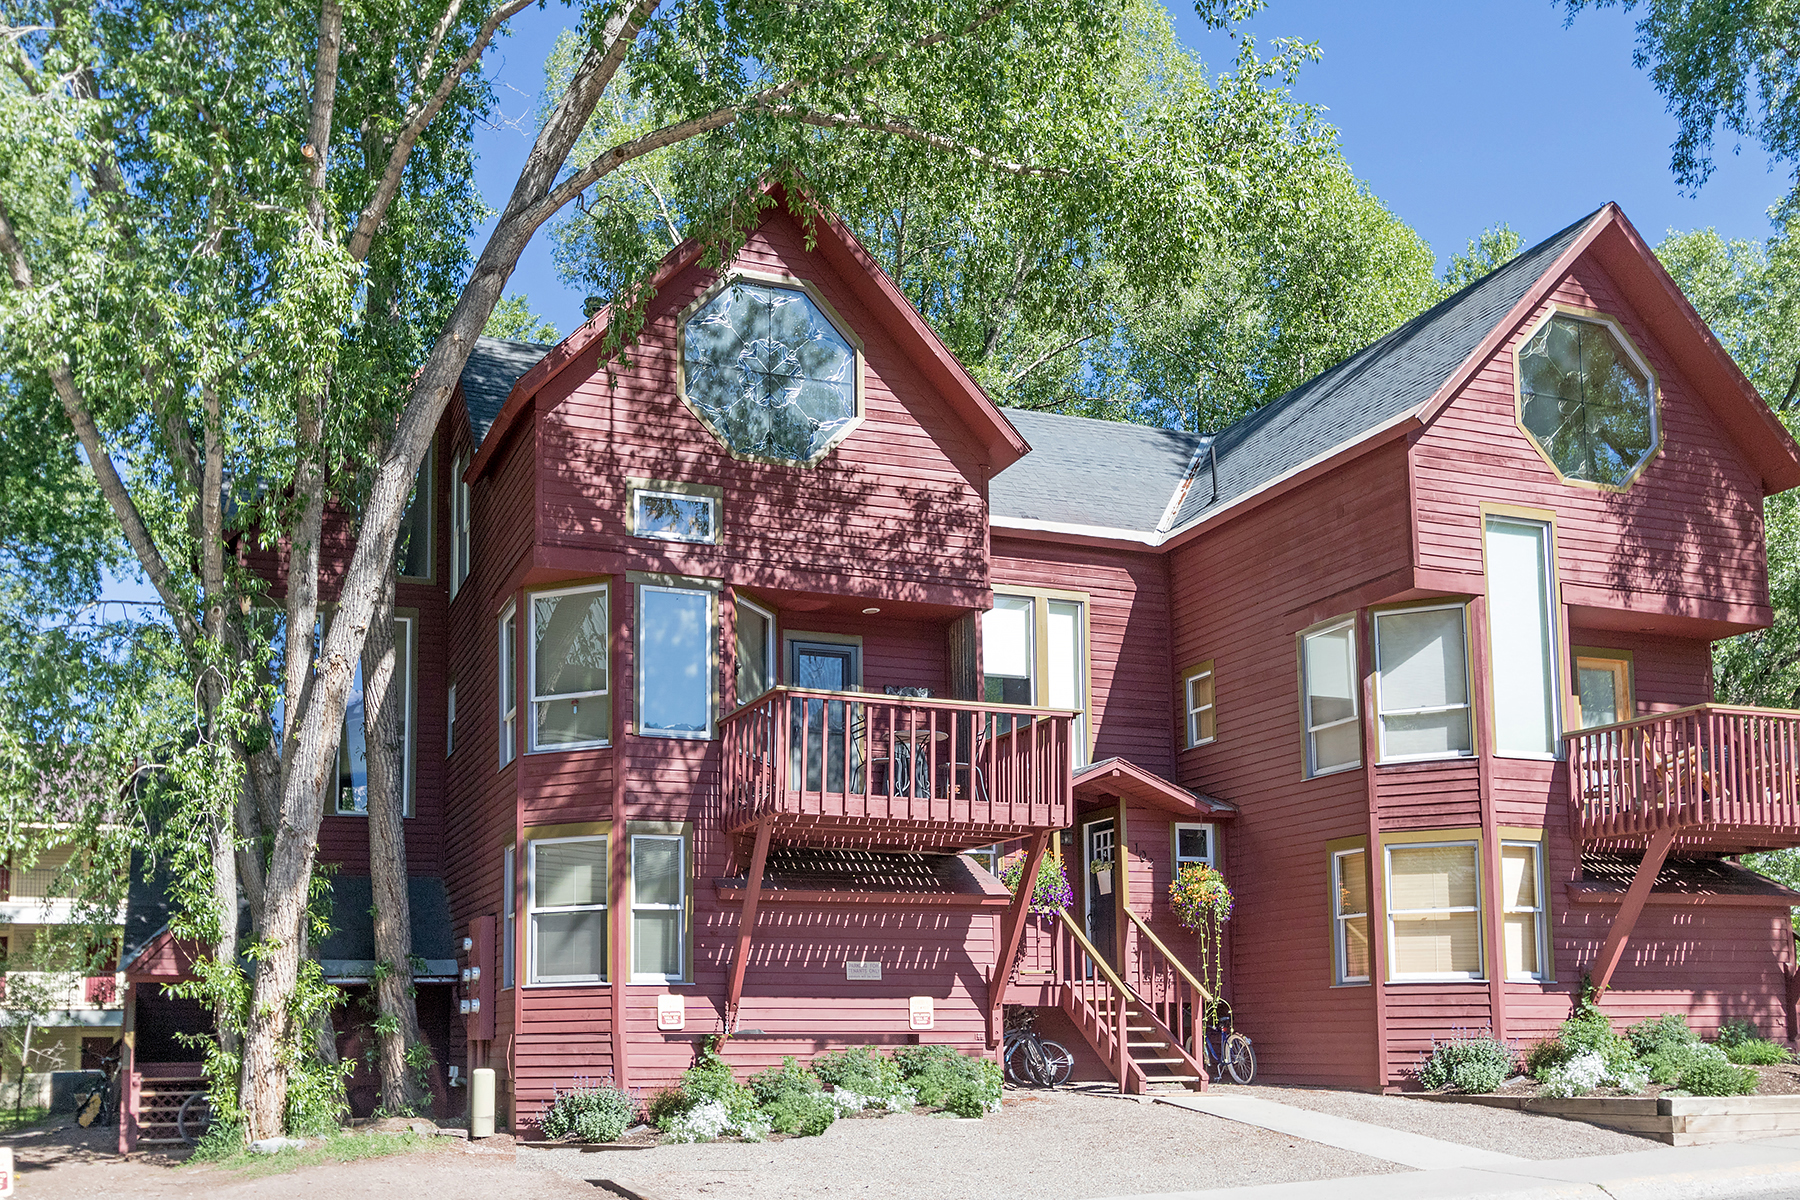 共管物業 為 出售 在 Cornet Creek Unit 104 103 South Davis Street, Unit 104, Telluride, 科羅拉多州, 81435 美國